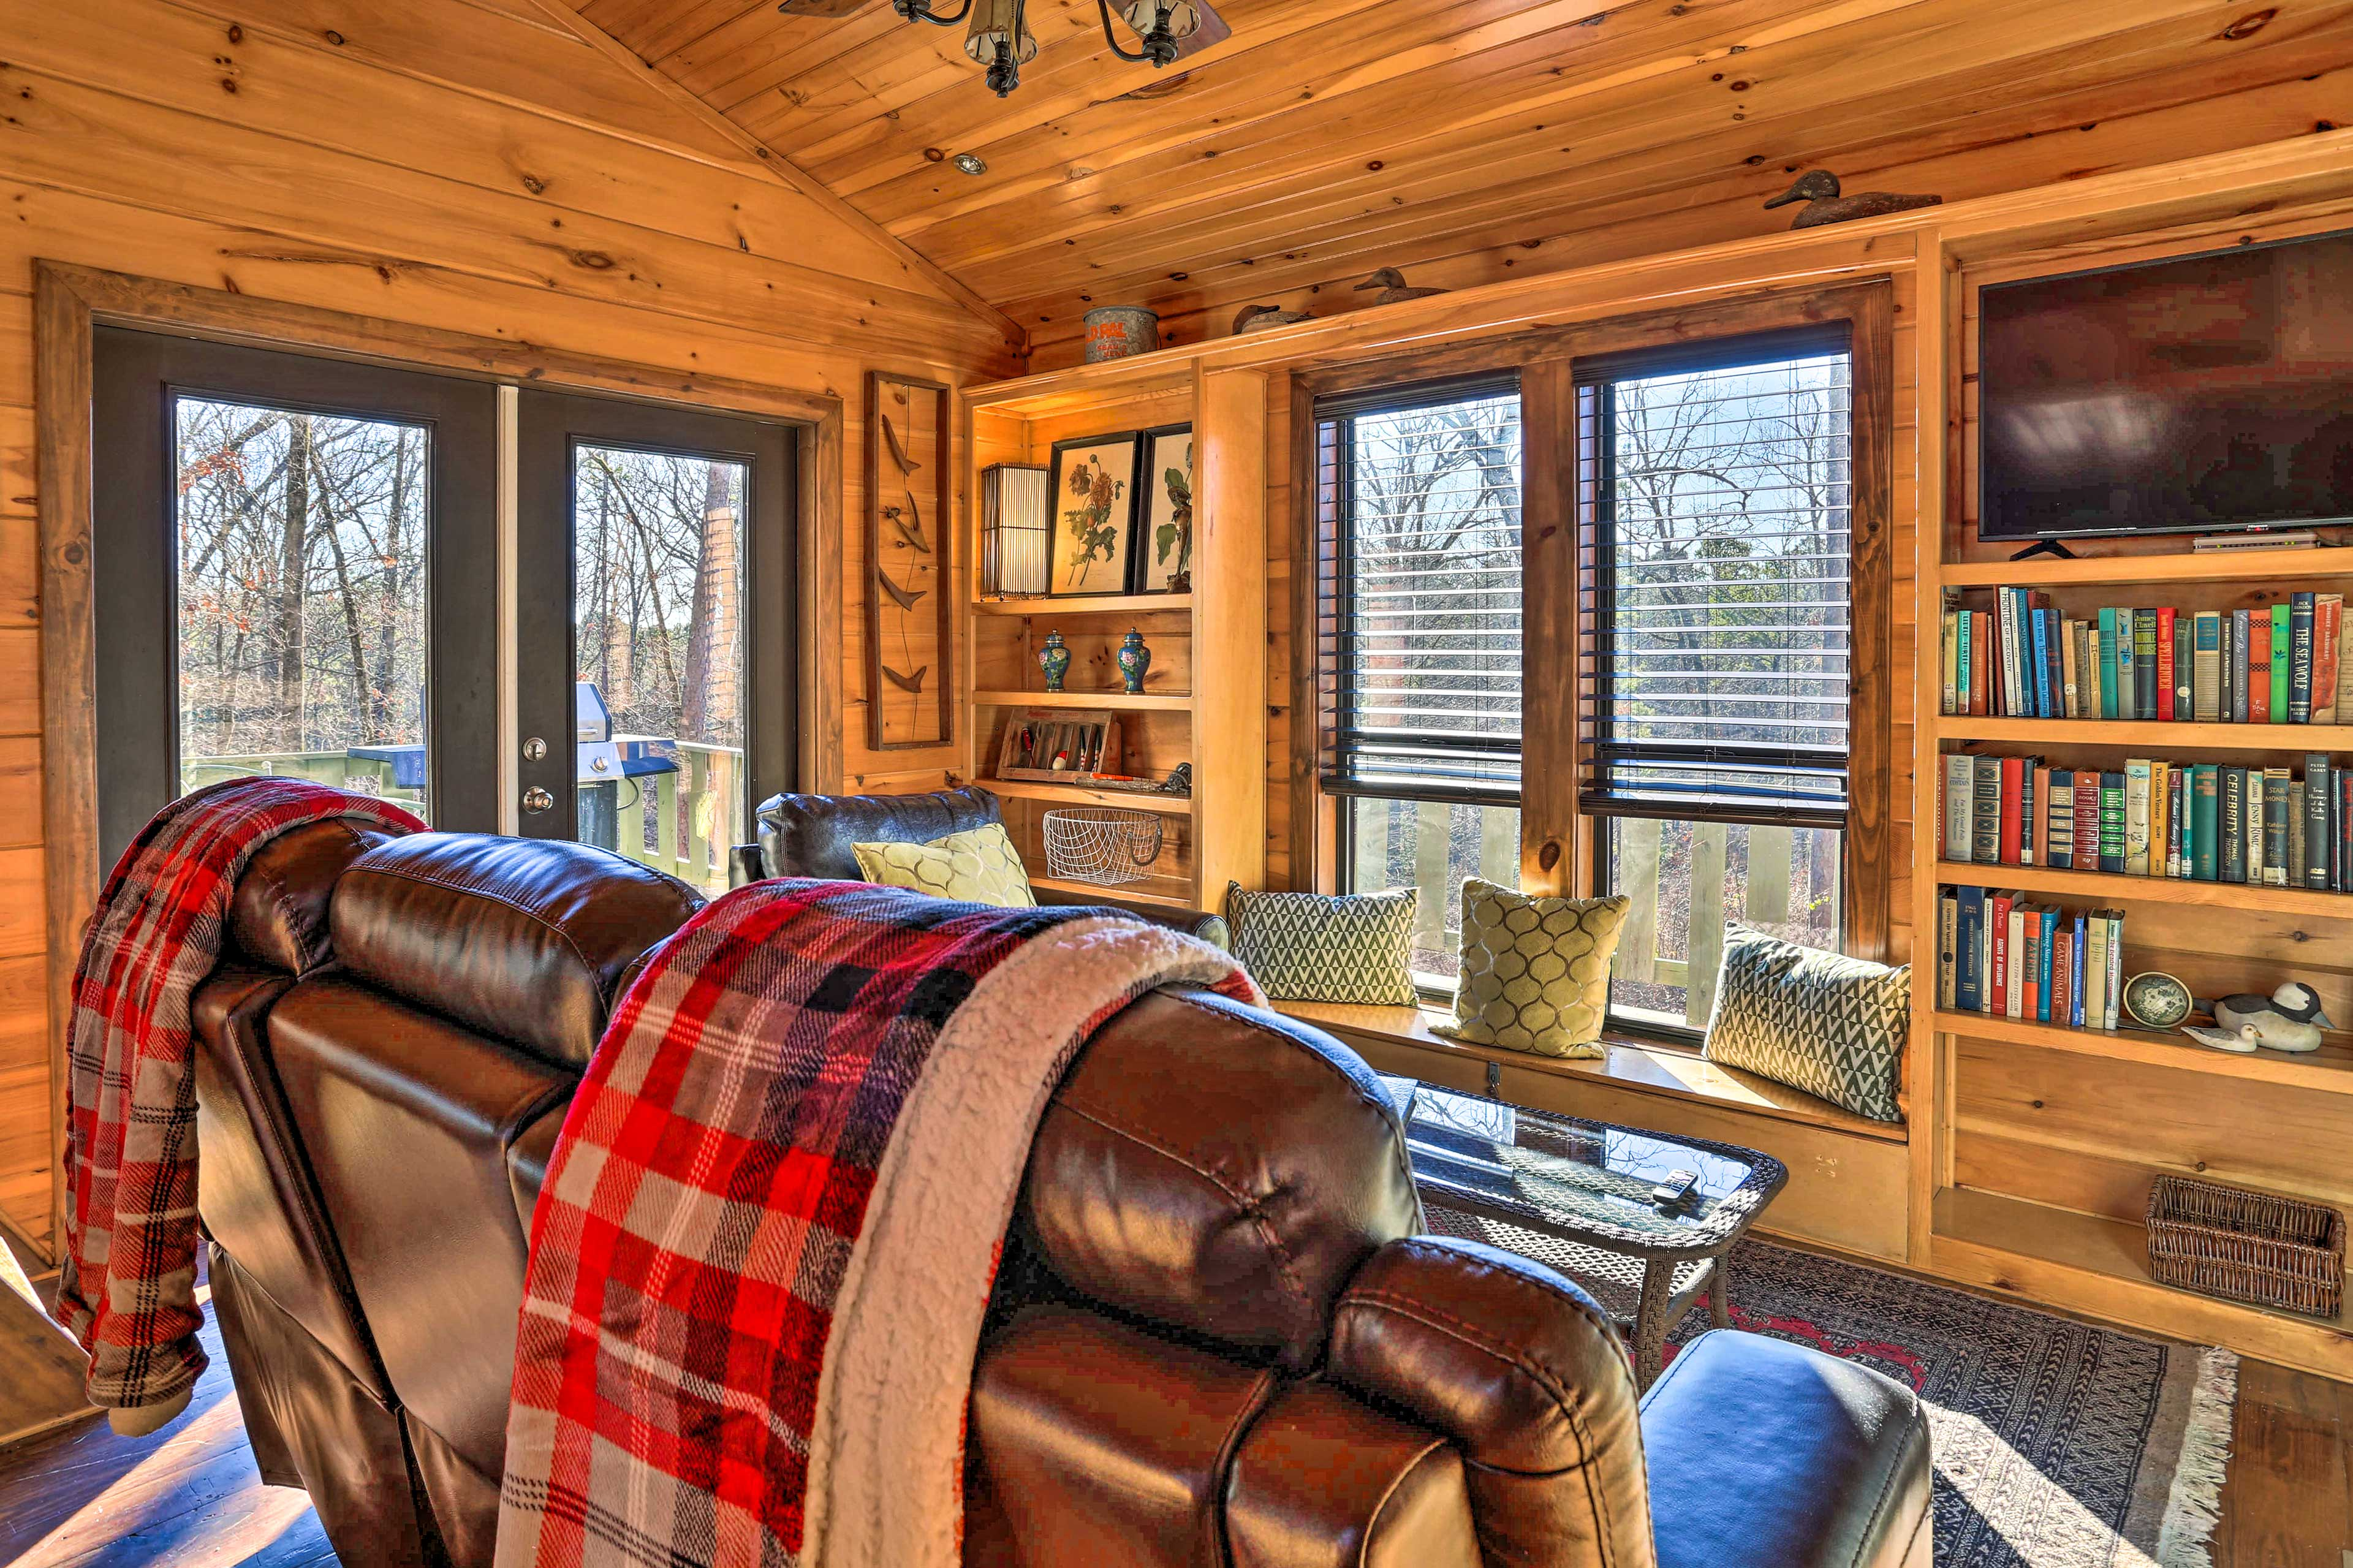 Bring your favorite travel companions to this warm & inviting vacation rental.